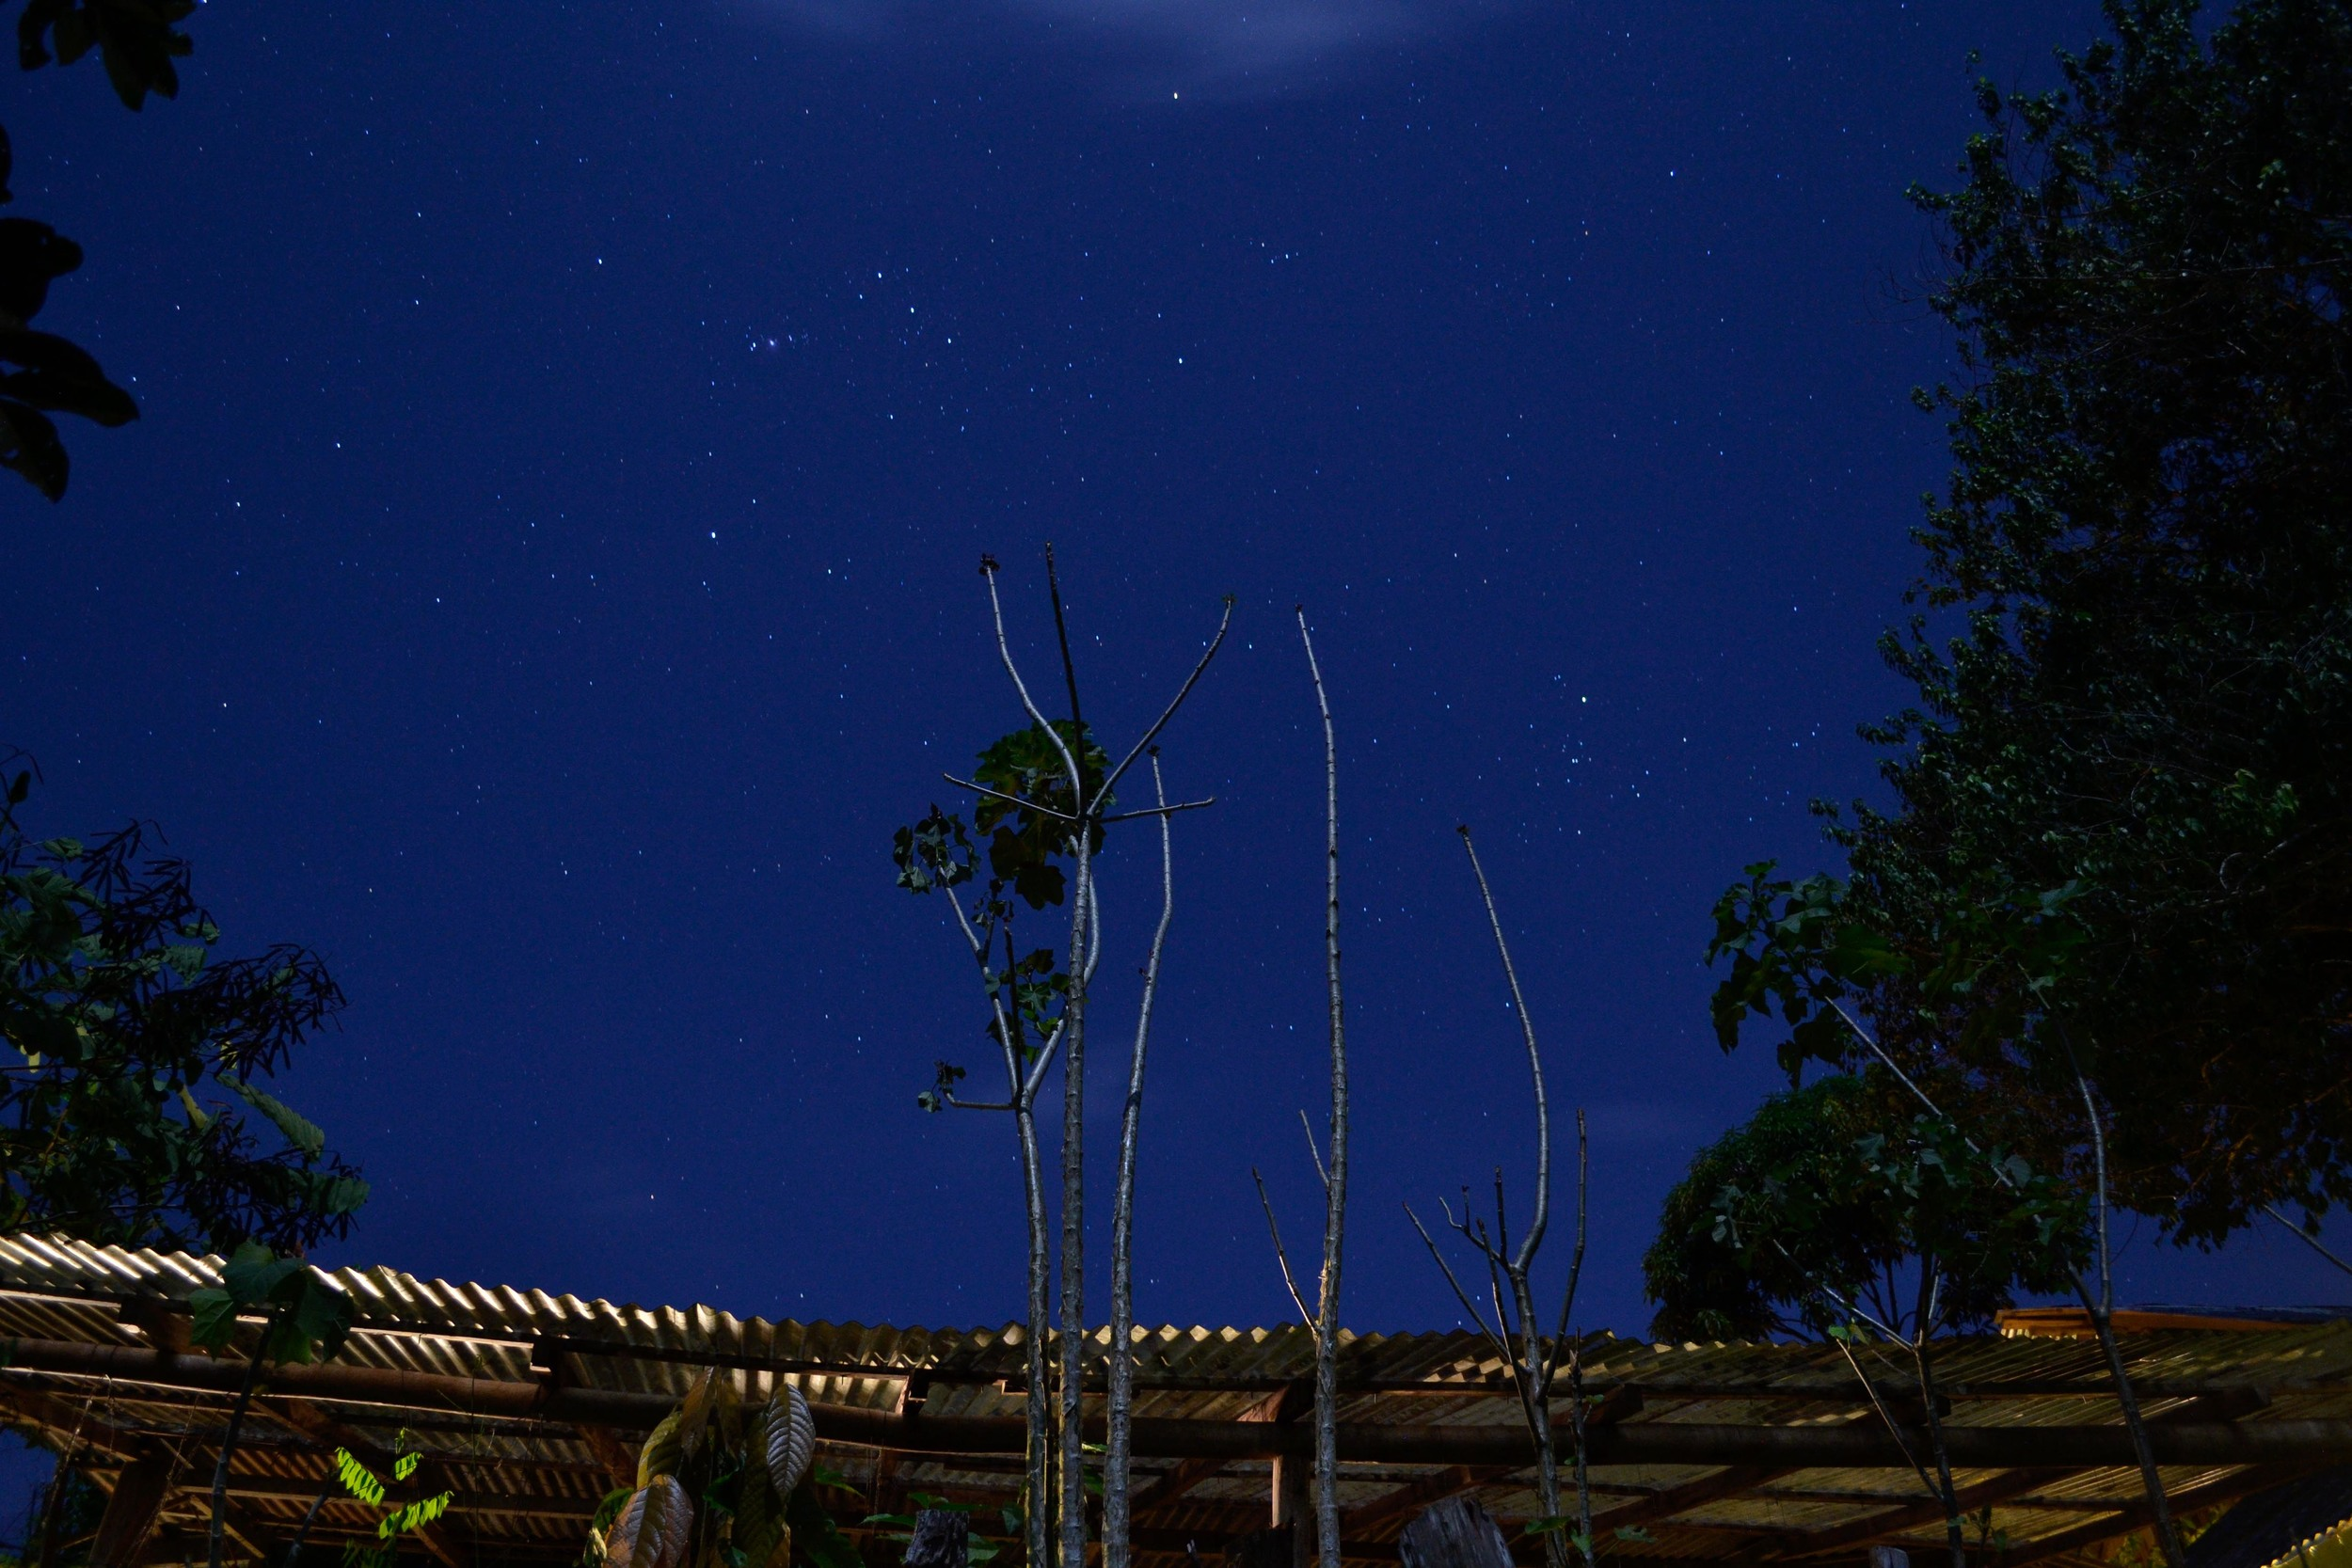 The night sky as seen looking towards the plant nursery from the yoga deck of La Iguana.